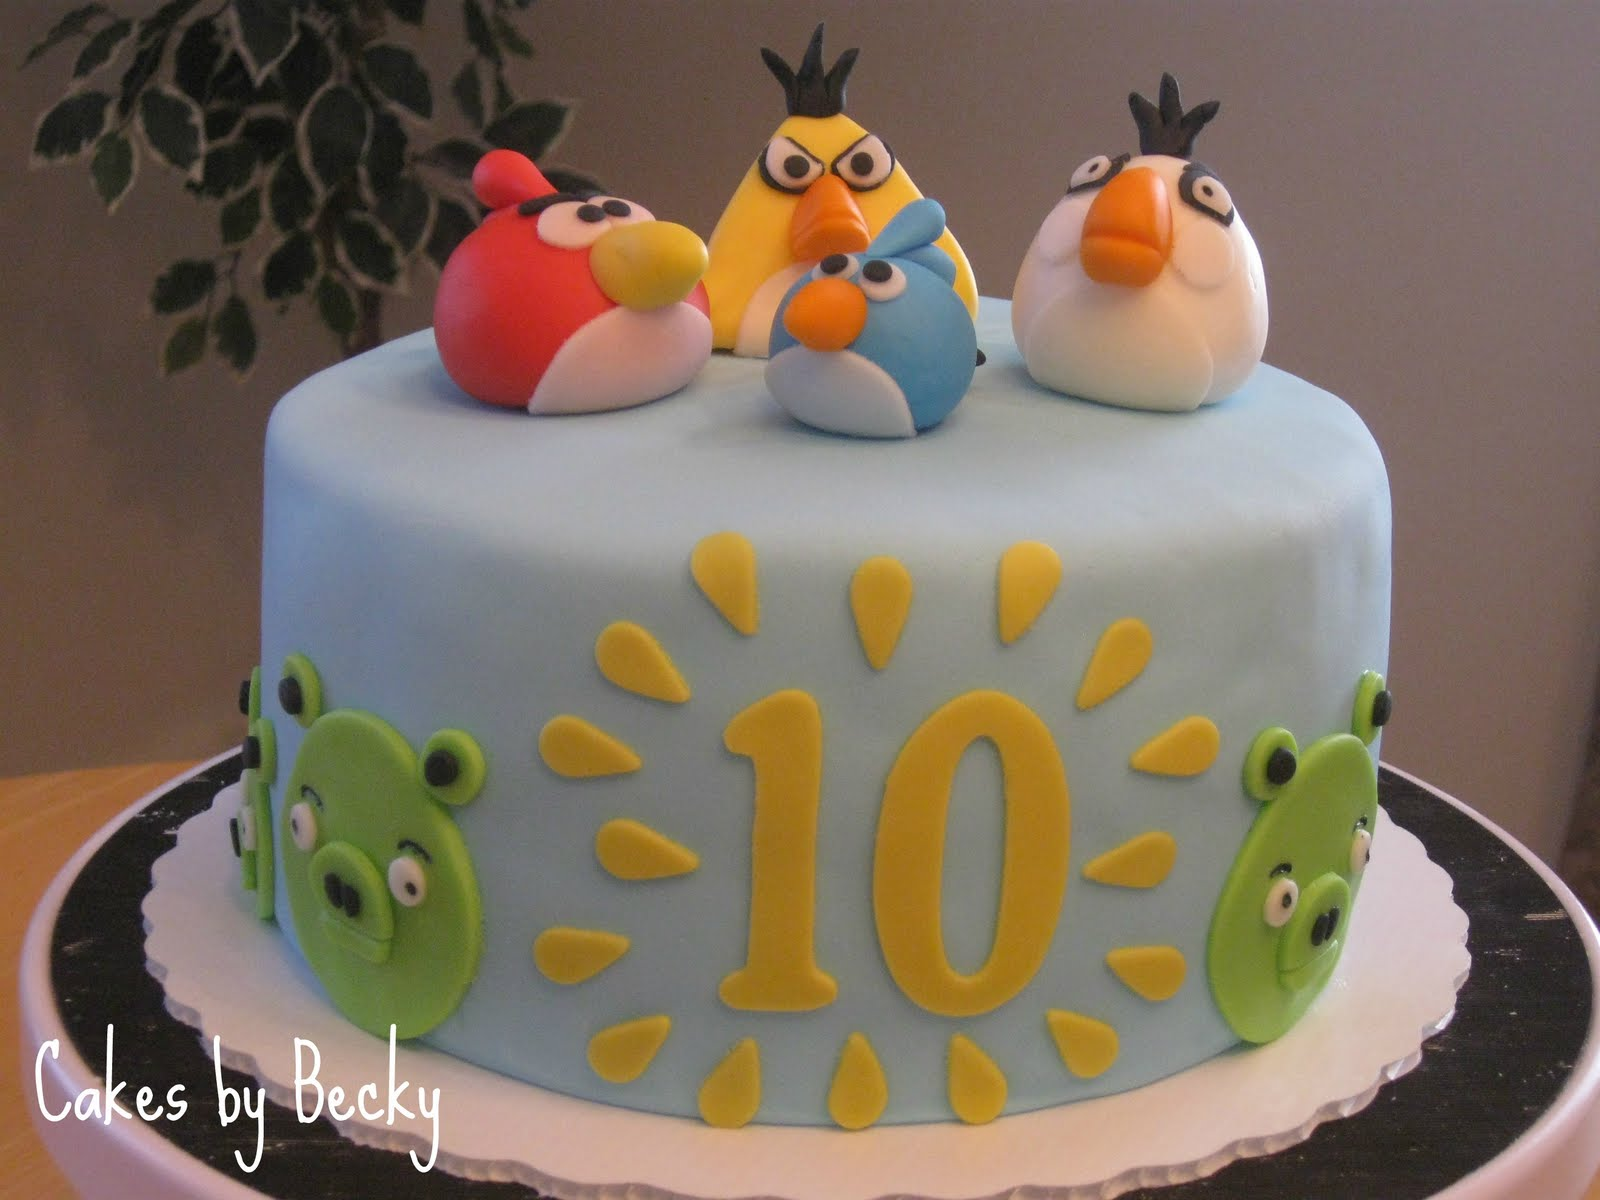 Angry Birds Birthday Cake Well It Finally Happened My Baby Turned 10 Years Old Cant Believe Hes That Already